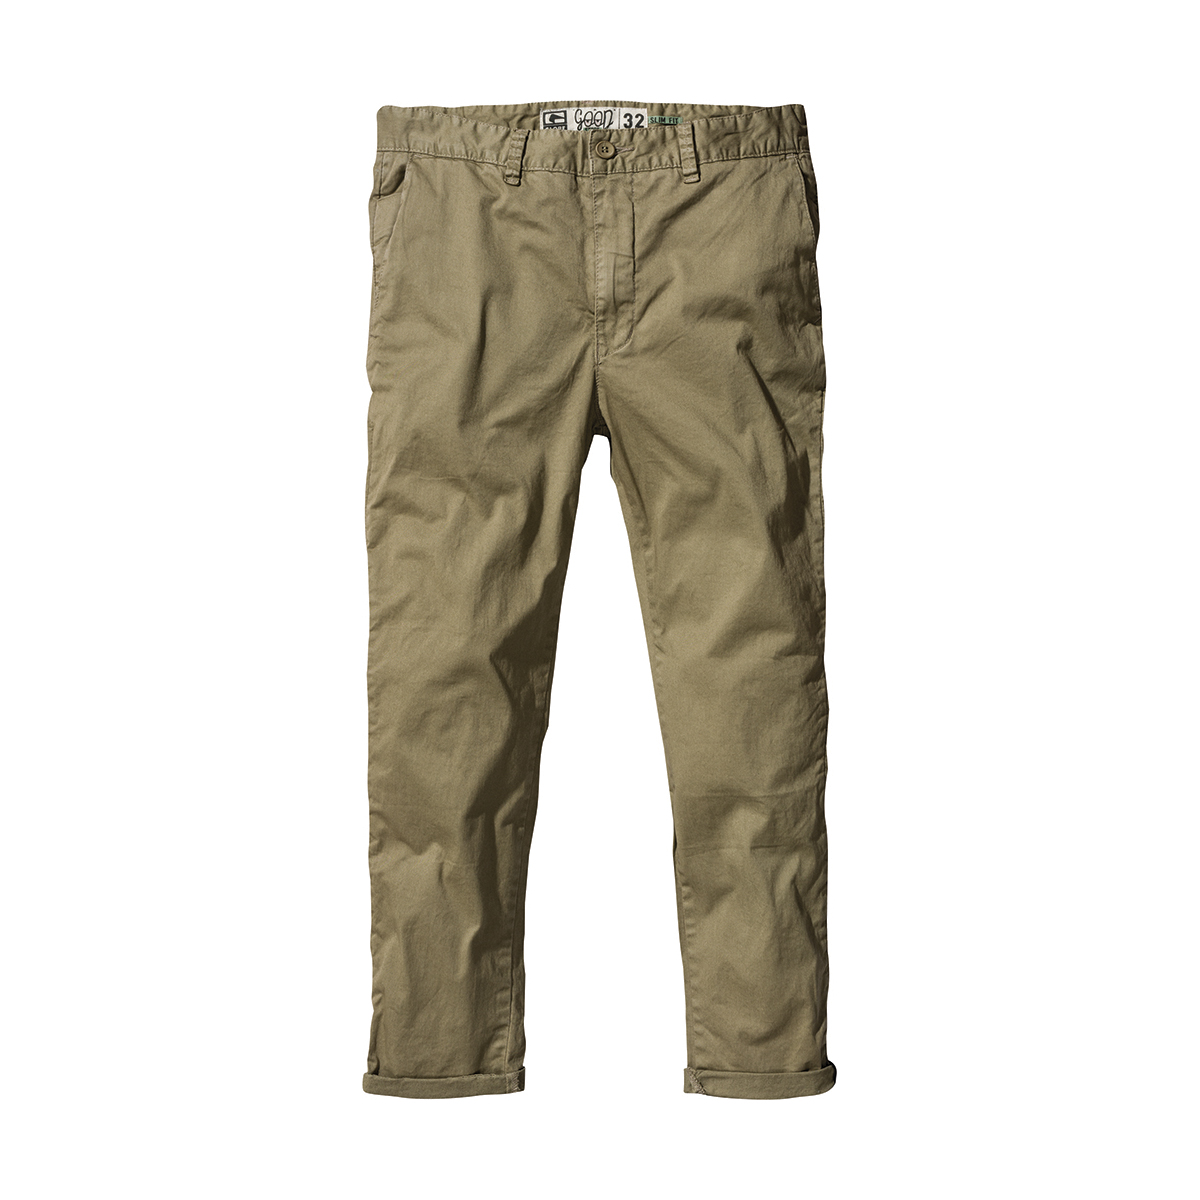 GLOBE Goodstock Drop Crotch Mens Chino